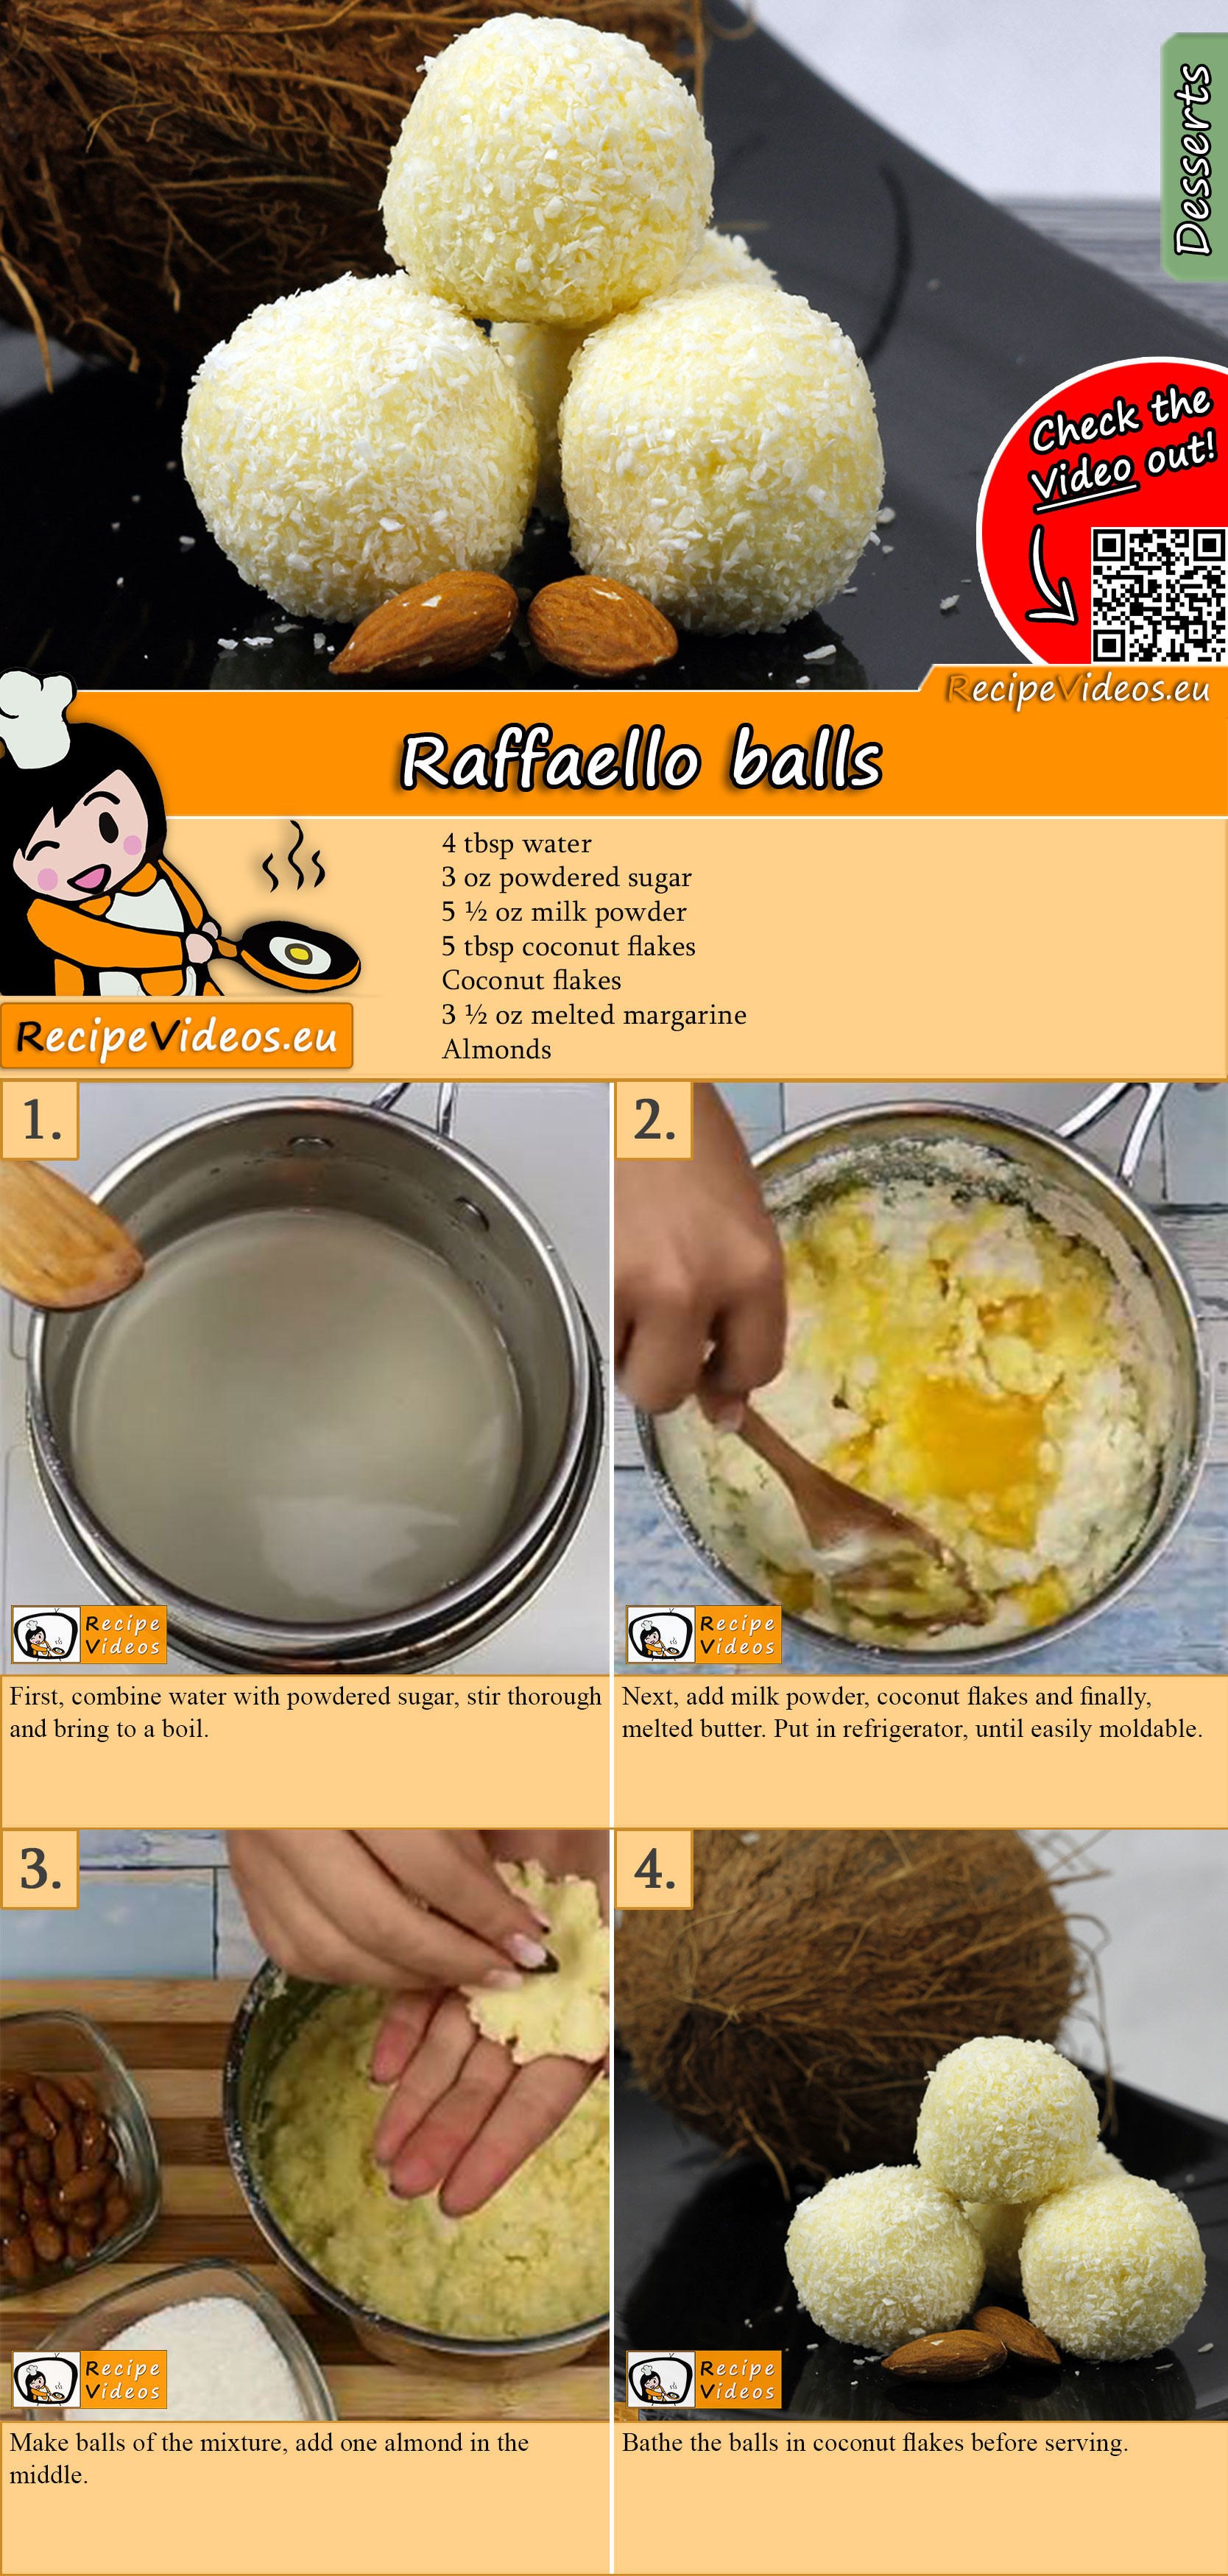 Raffaello balls recipe with video